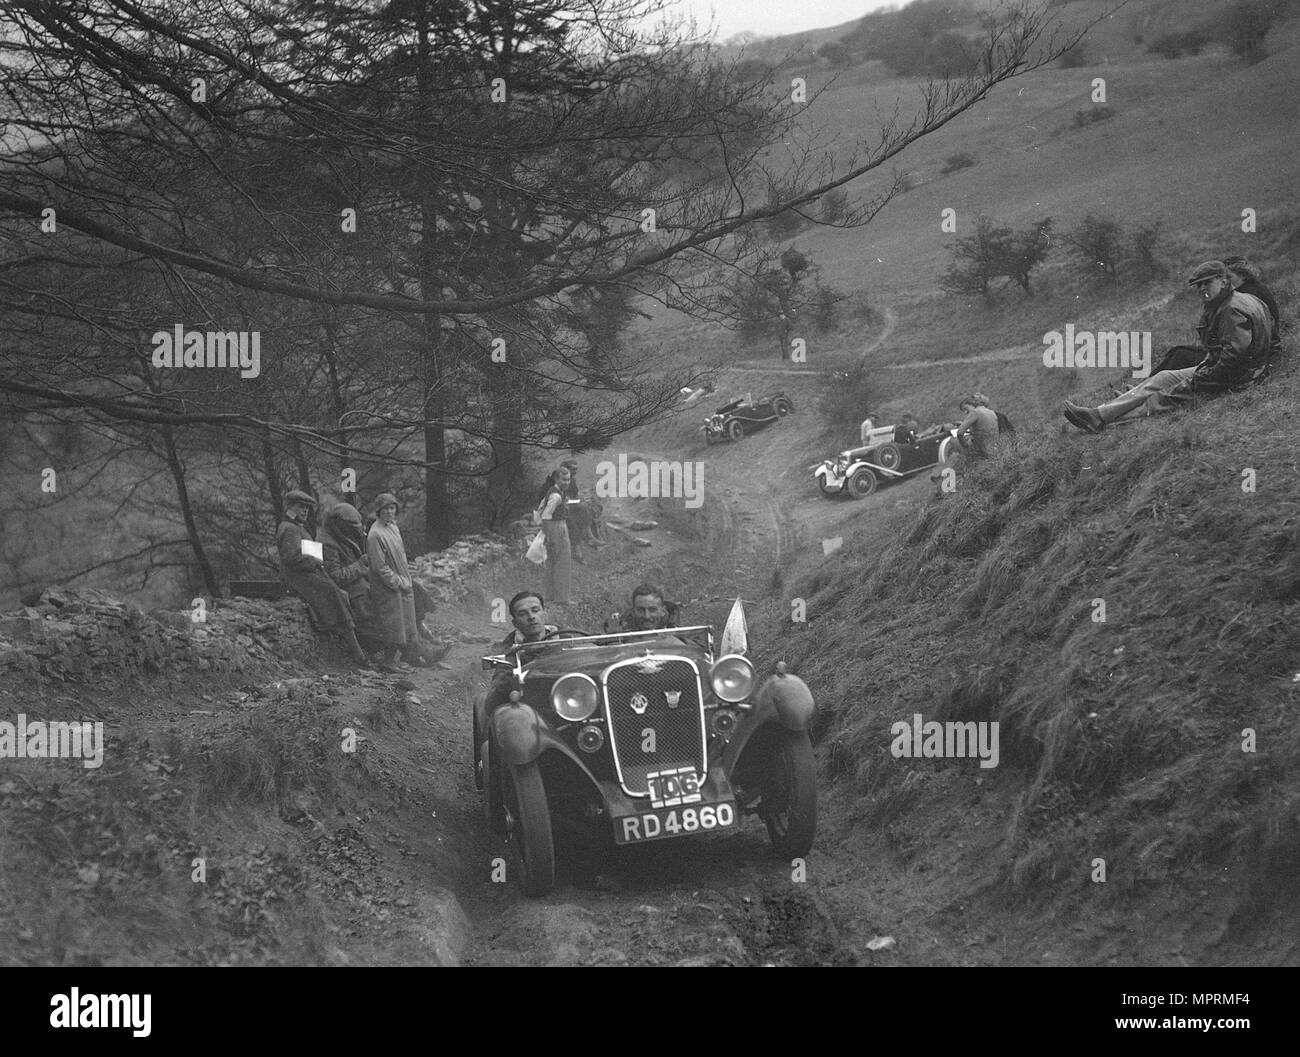 Singer competing in the MG Car Club Abingdon Trial/Rally, 1939. Artist: Bill Brunell. - Stock Image